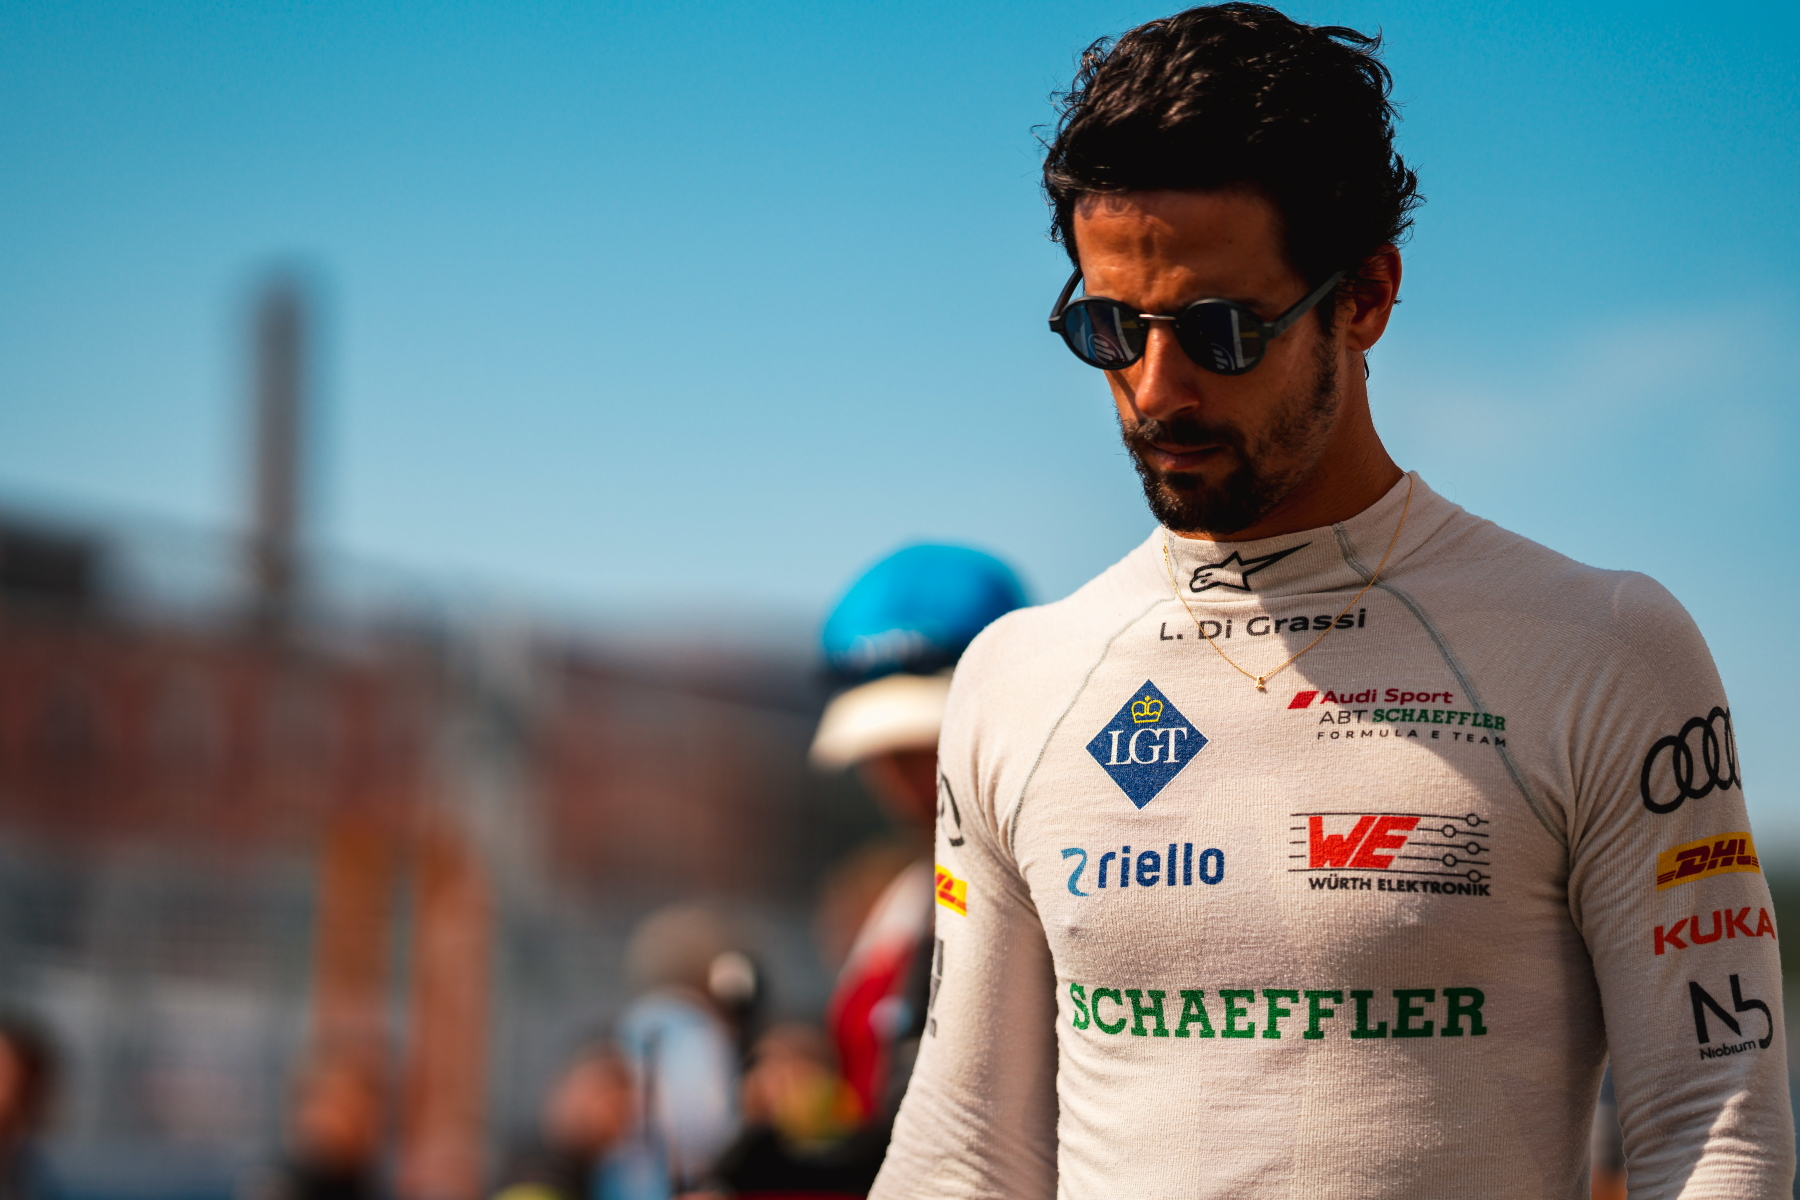 Lucas di Grassi New York City Sunglasses Head Down Overall opened